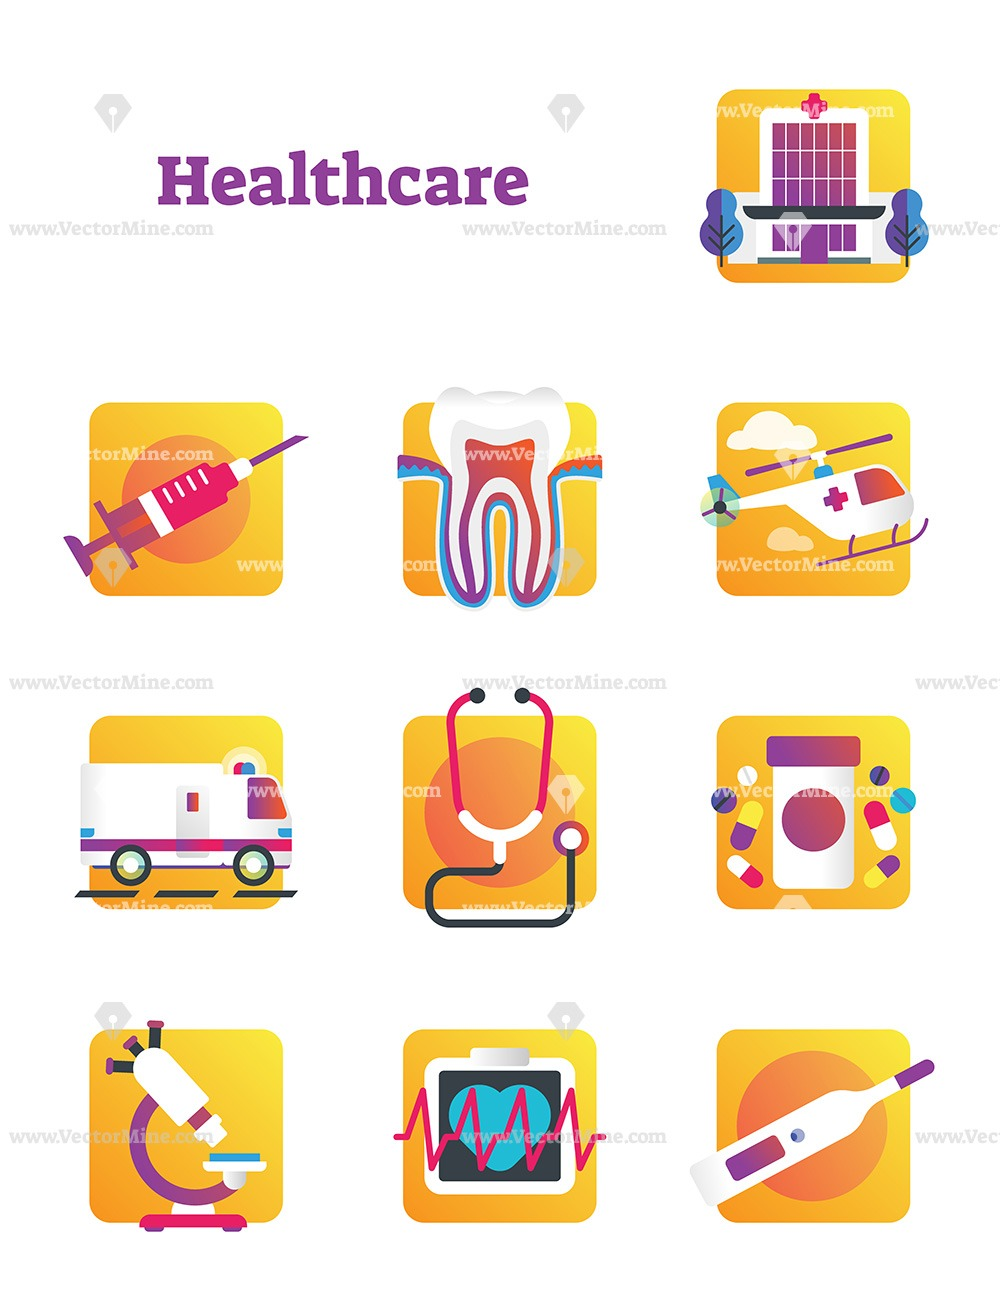 Free healthcare and medicine vector icons collection